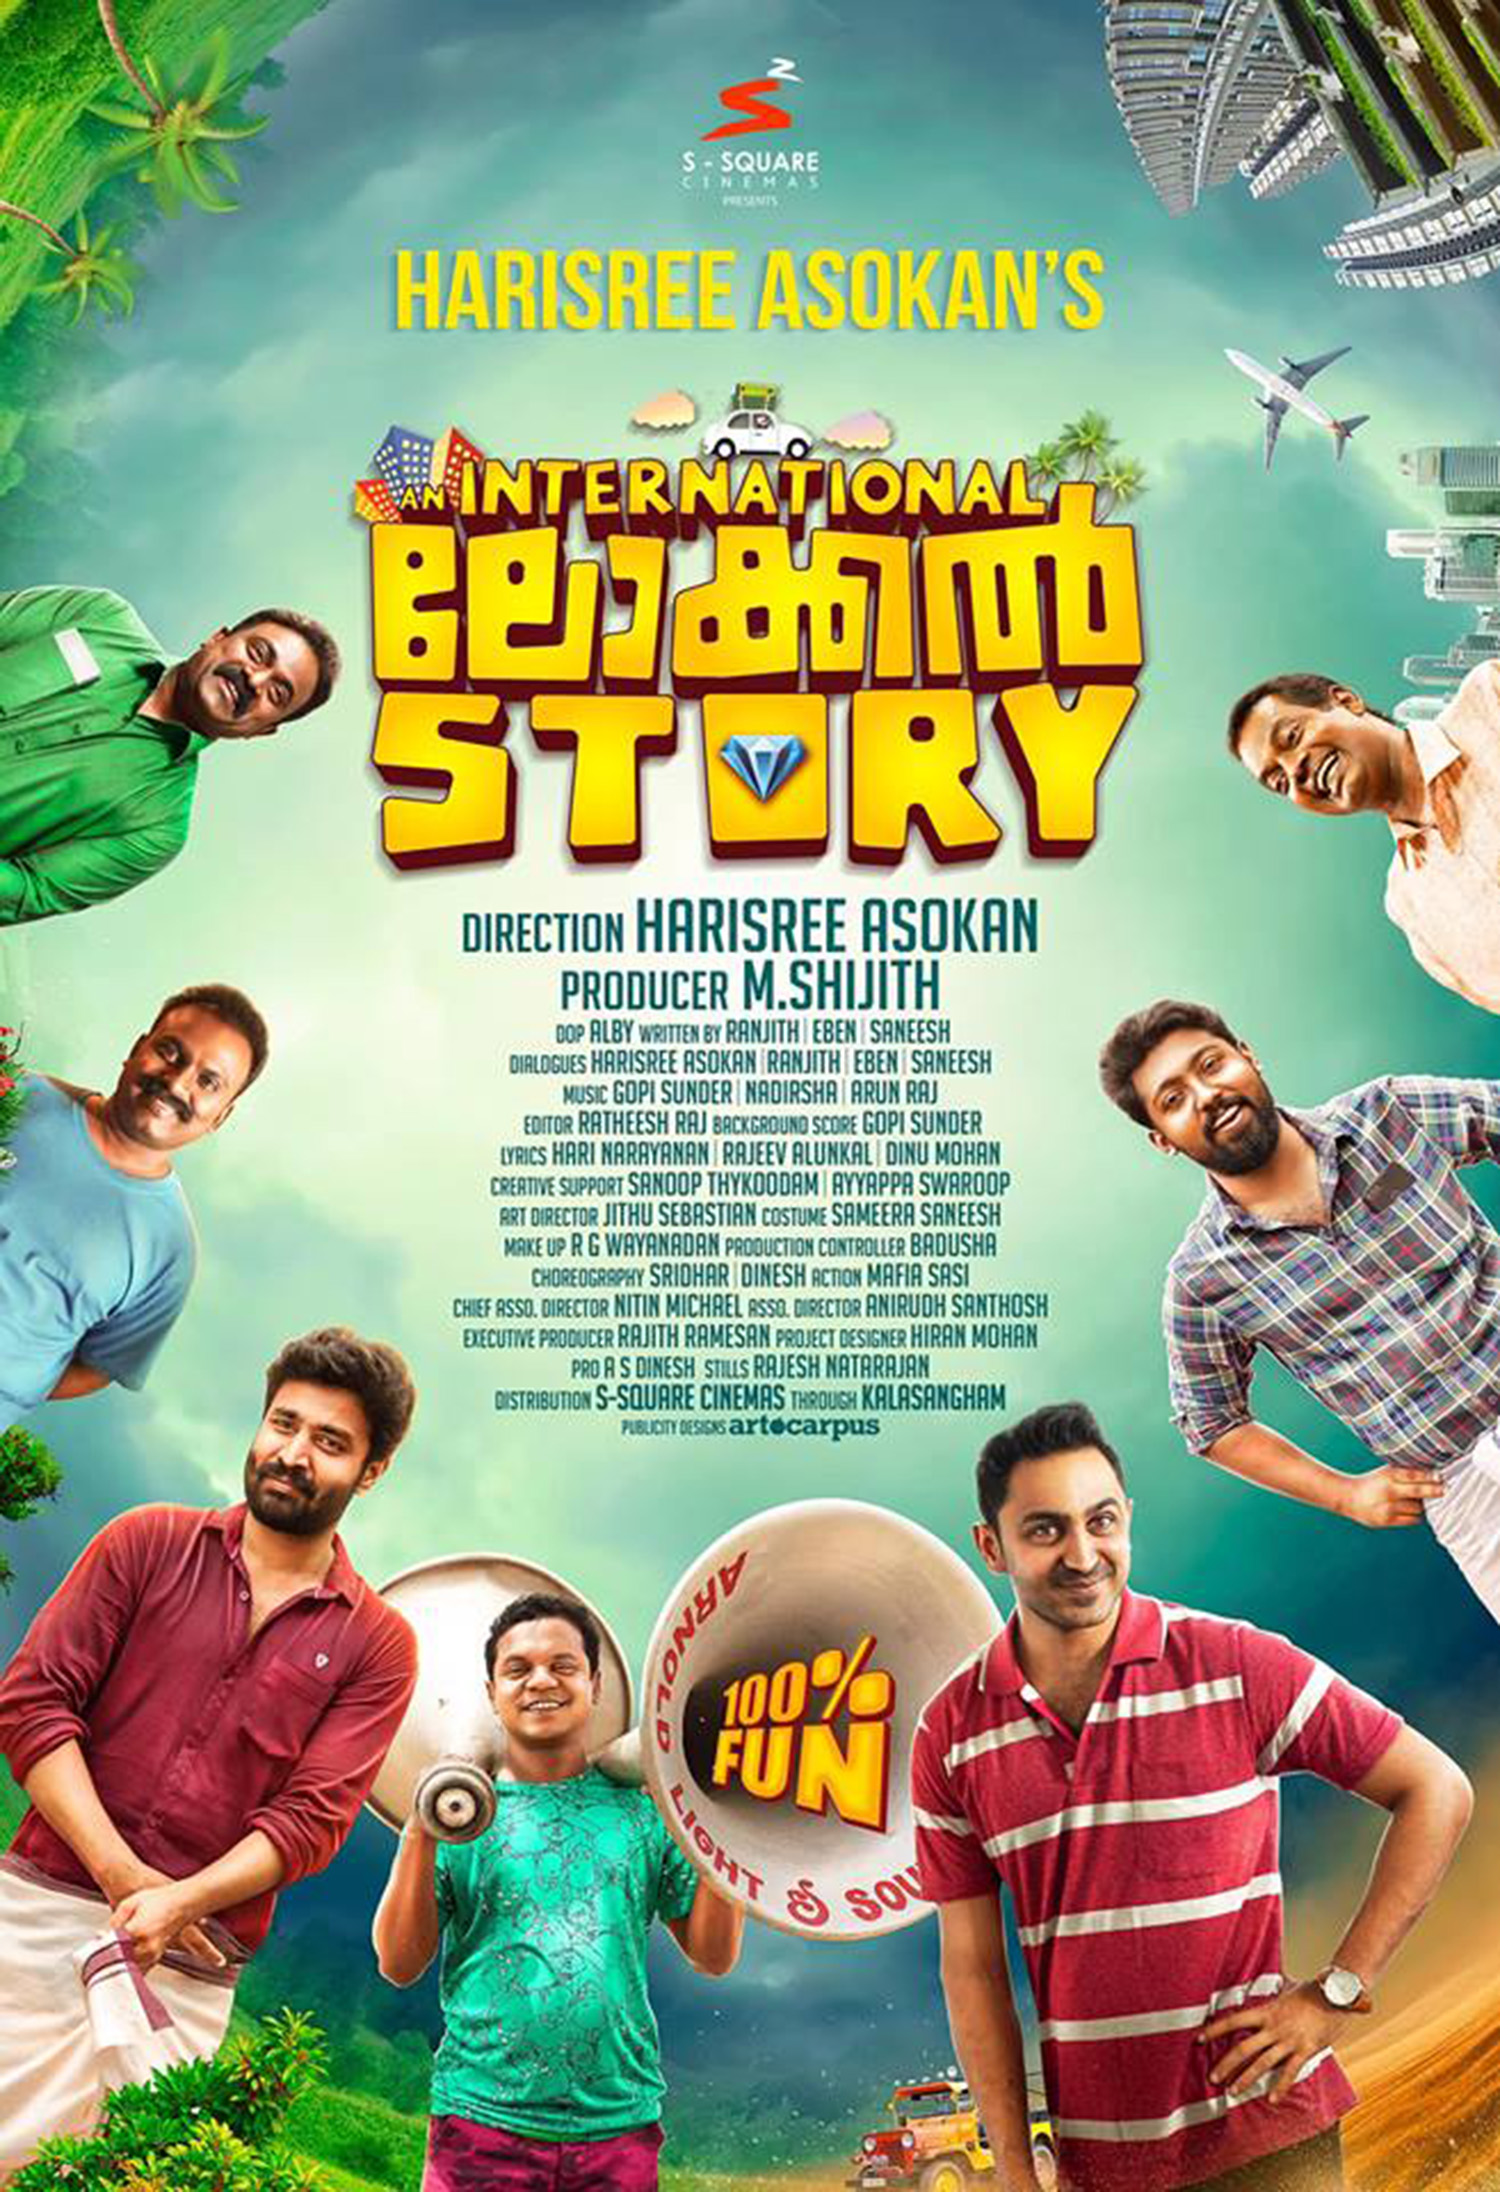 An International Local Story,An International Local Story first look poster,An International Local Story movie poster,An International Local Story malayalam movie,harisree ashokan,harisree ashokan's debut directional movie,harisree ashokan's first directional movie,harisree ashokan's An International Local Story first look poster